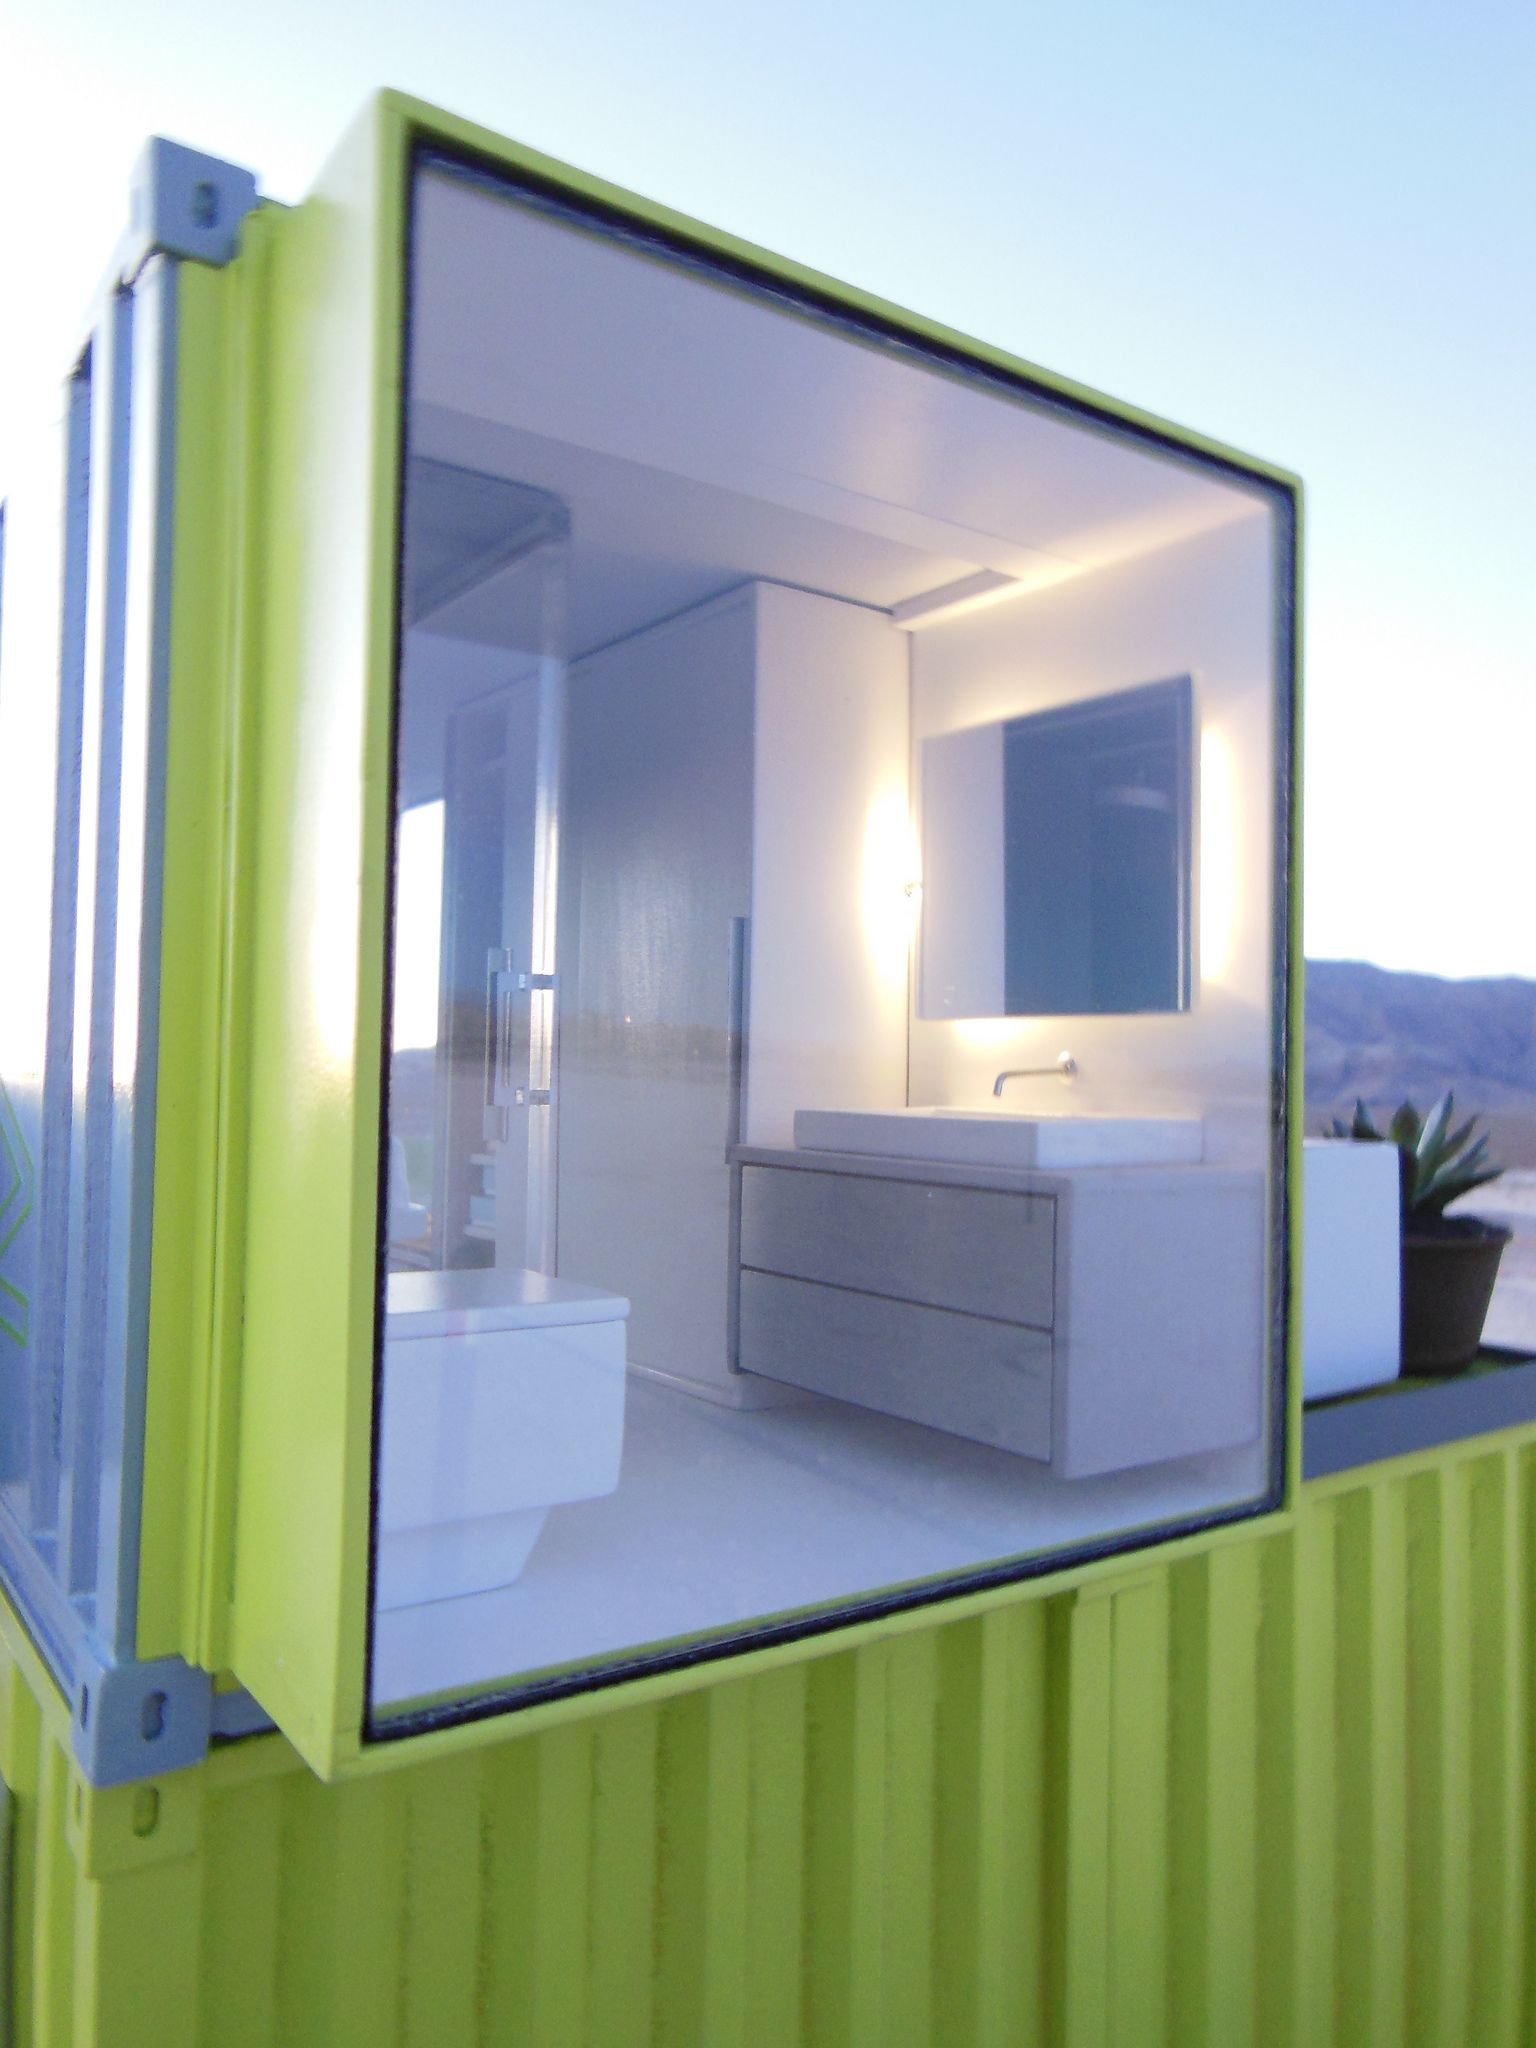 Can i afford a shipping container home container home plans